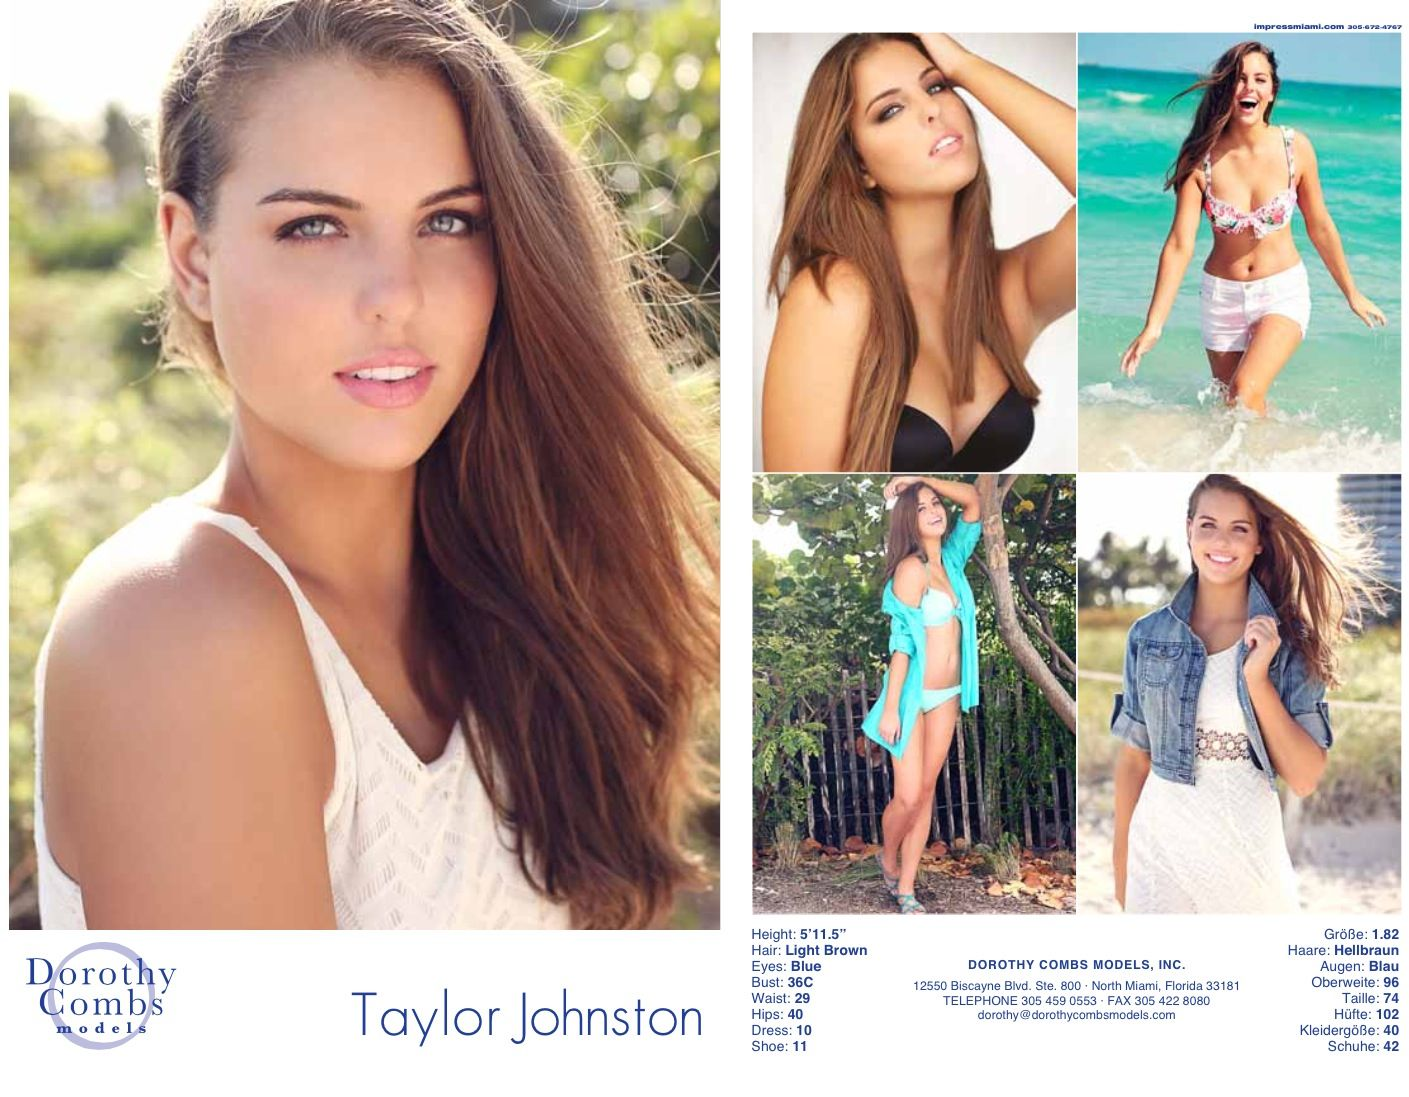 Dorothy Combs Models, Miami, Florida. Taylor's new comp card with ...